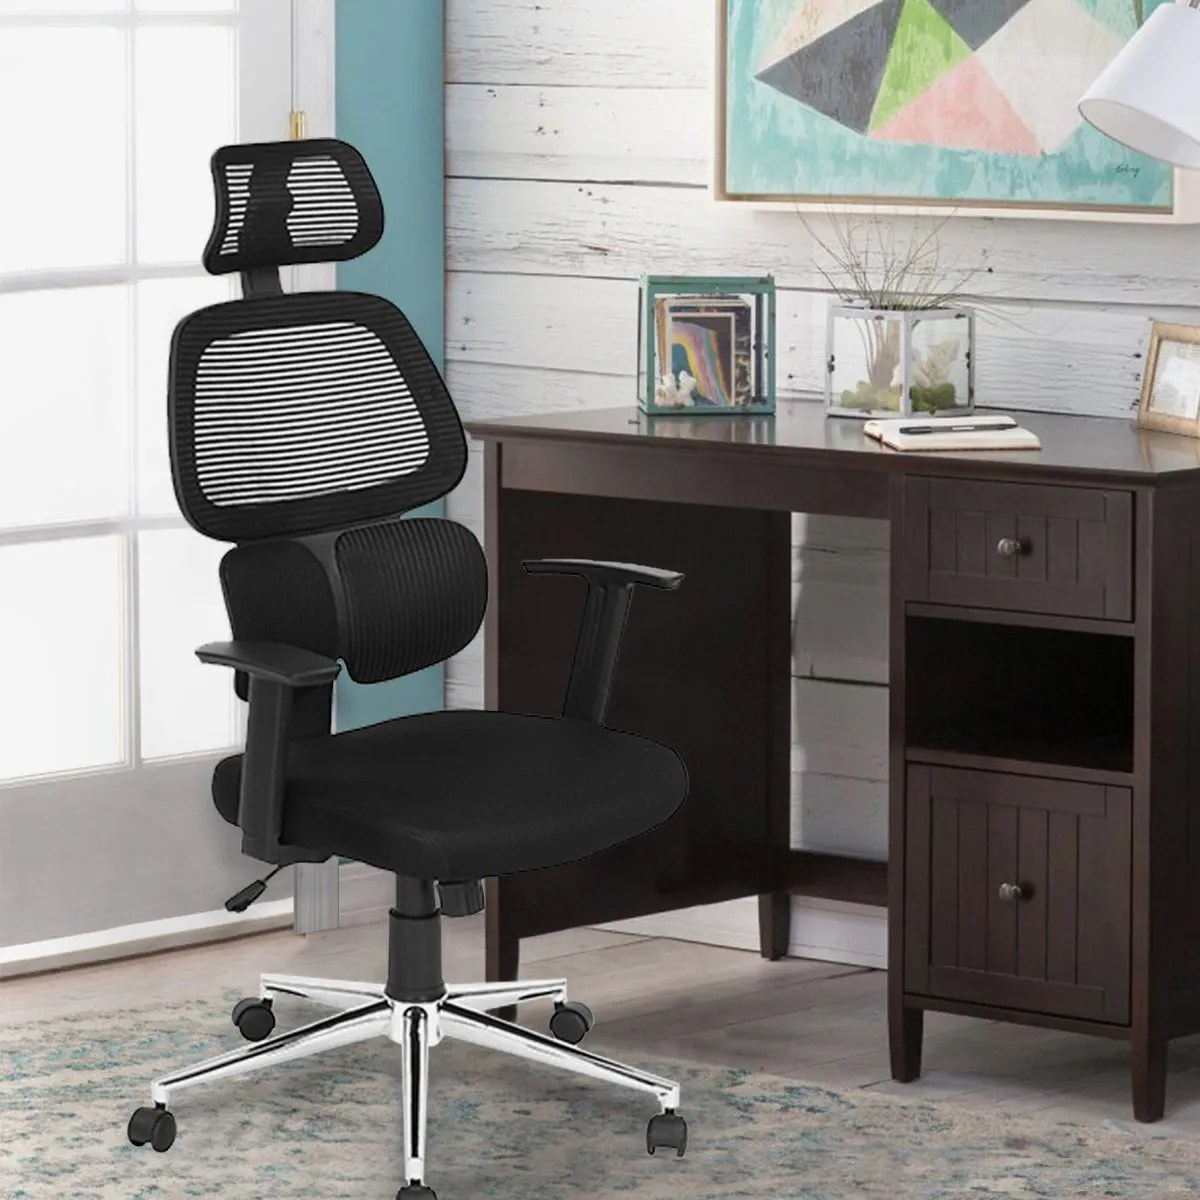 Back Support Office Chair 16 Best Office Chairs And Home Office Chairs 2018